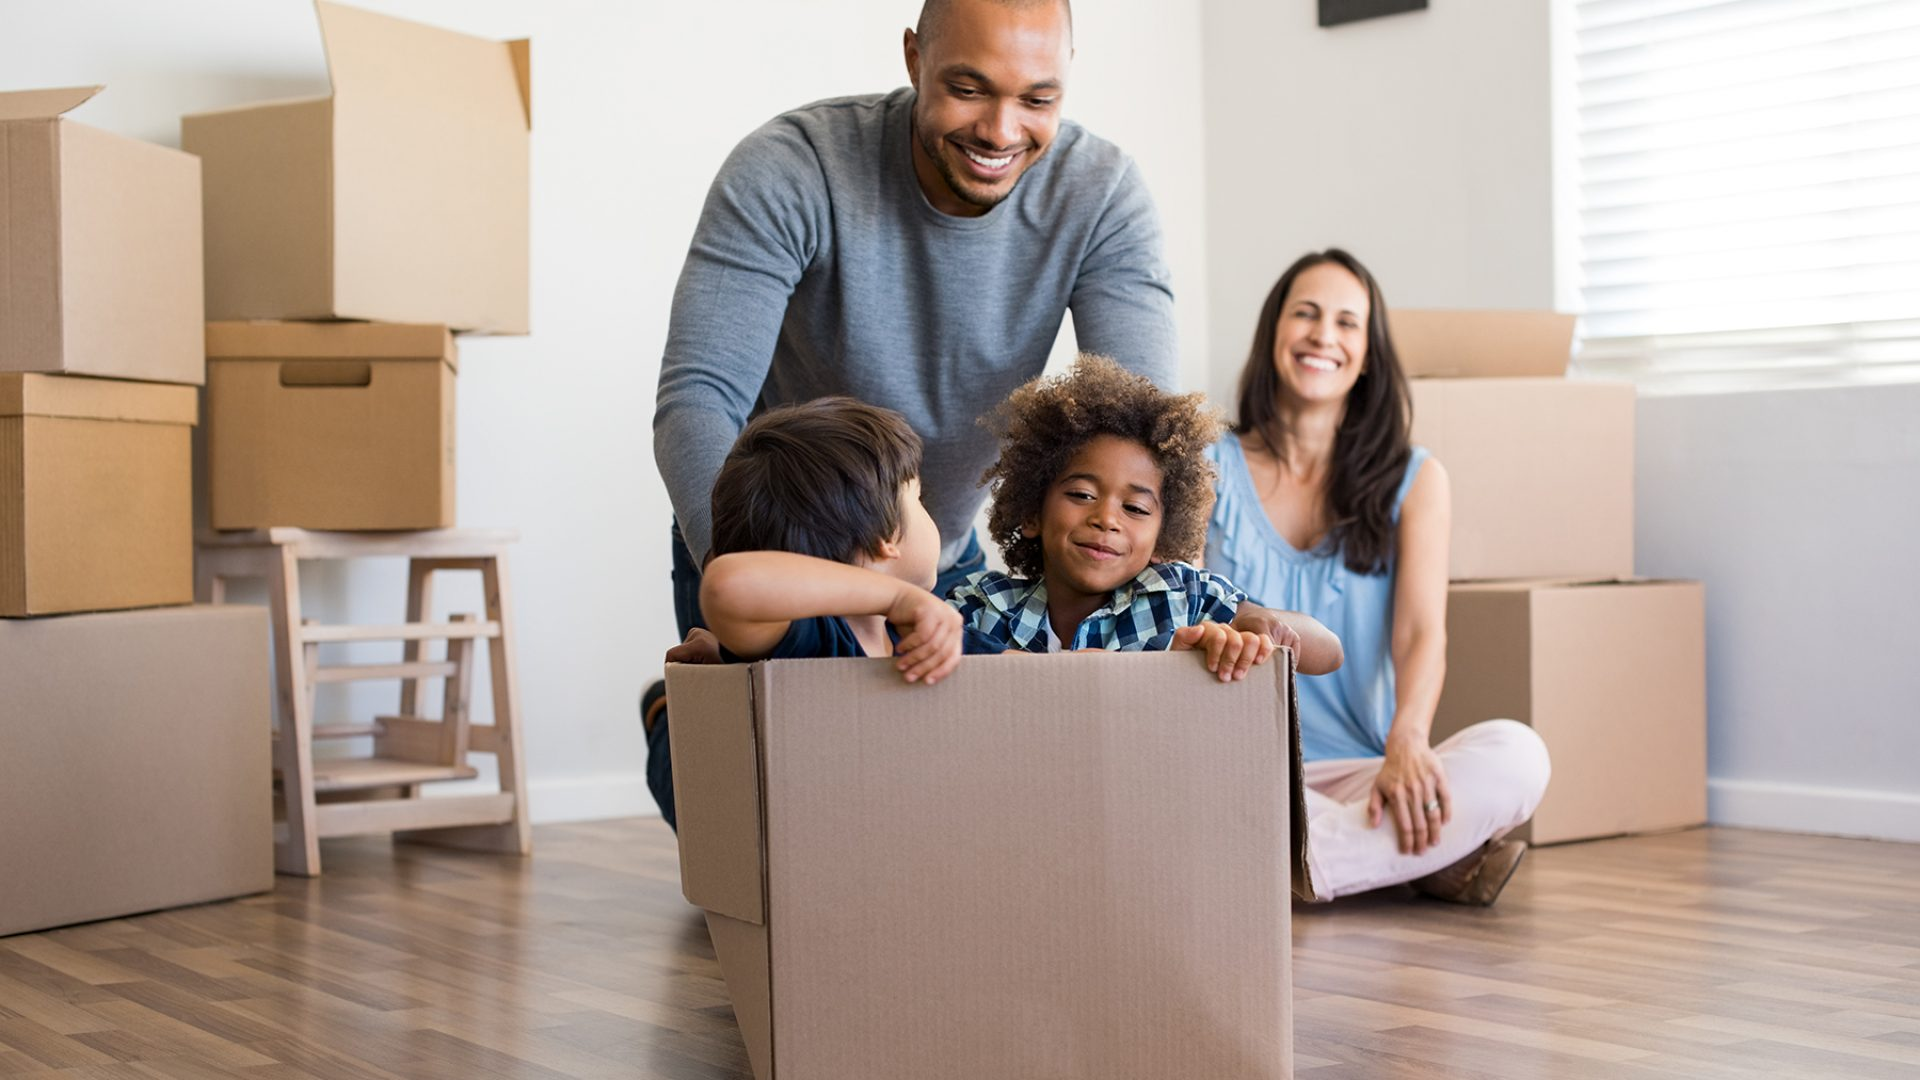 Moving out checklist